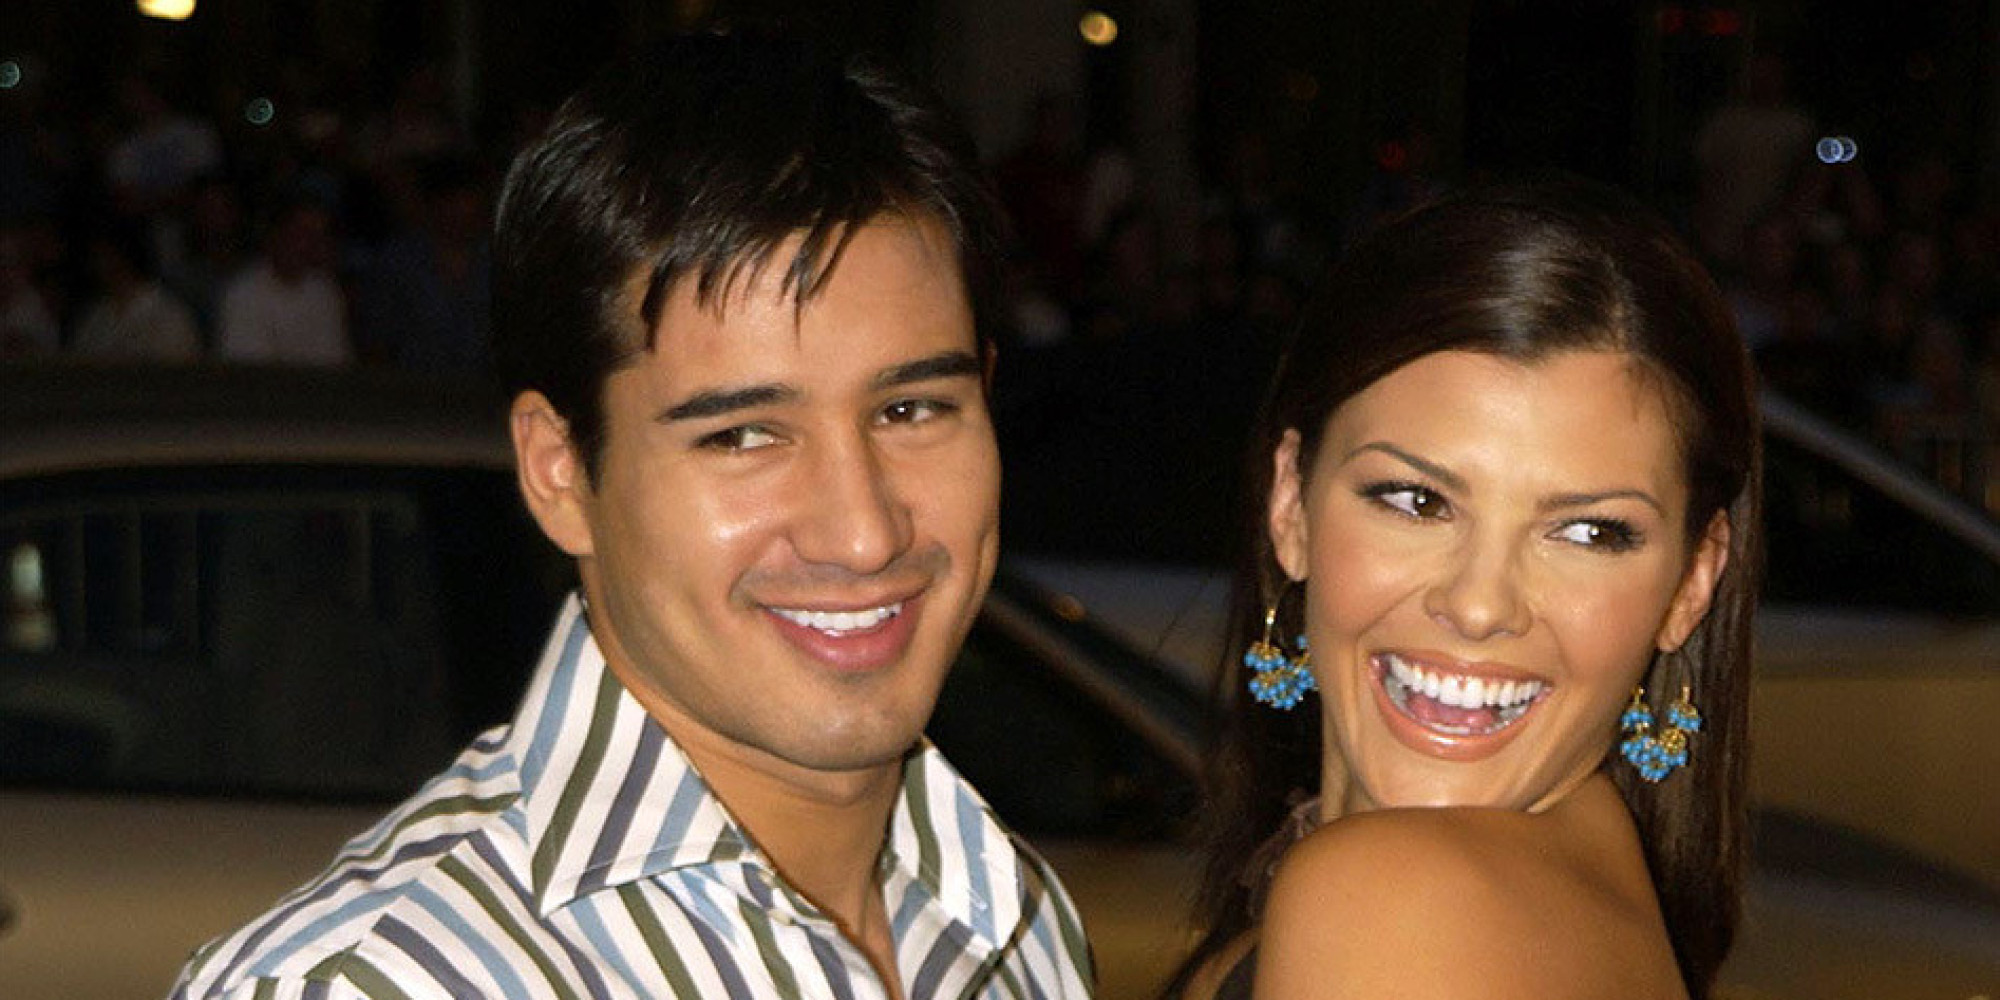 Mario Lopez and ex-wife Ali Landry